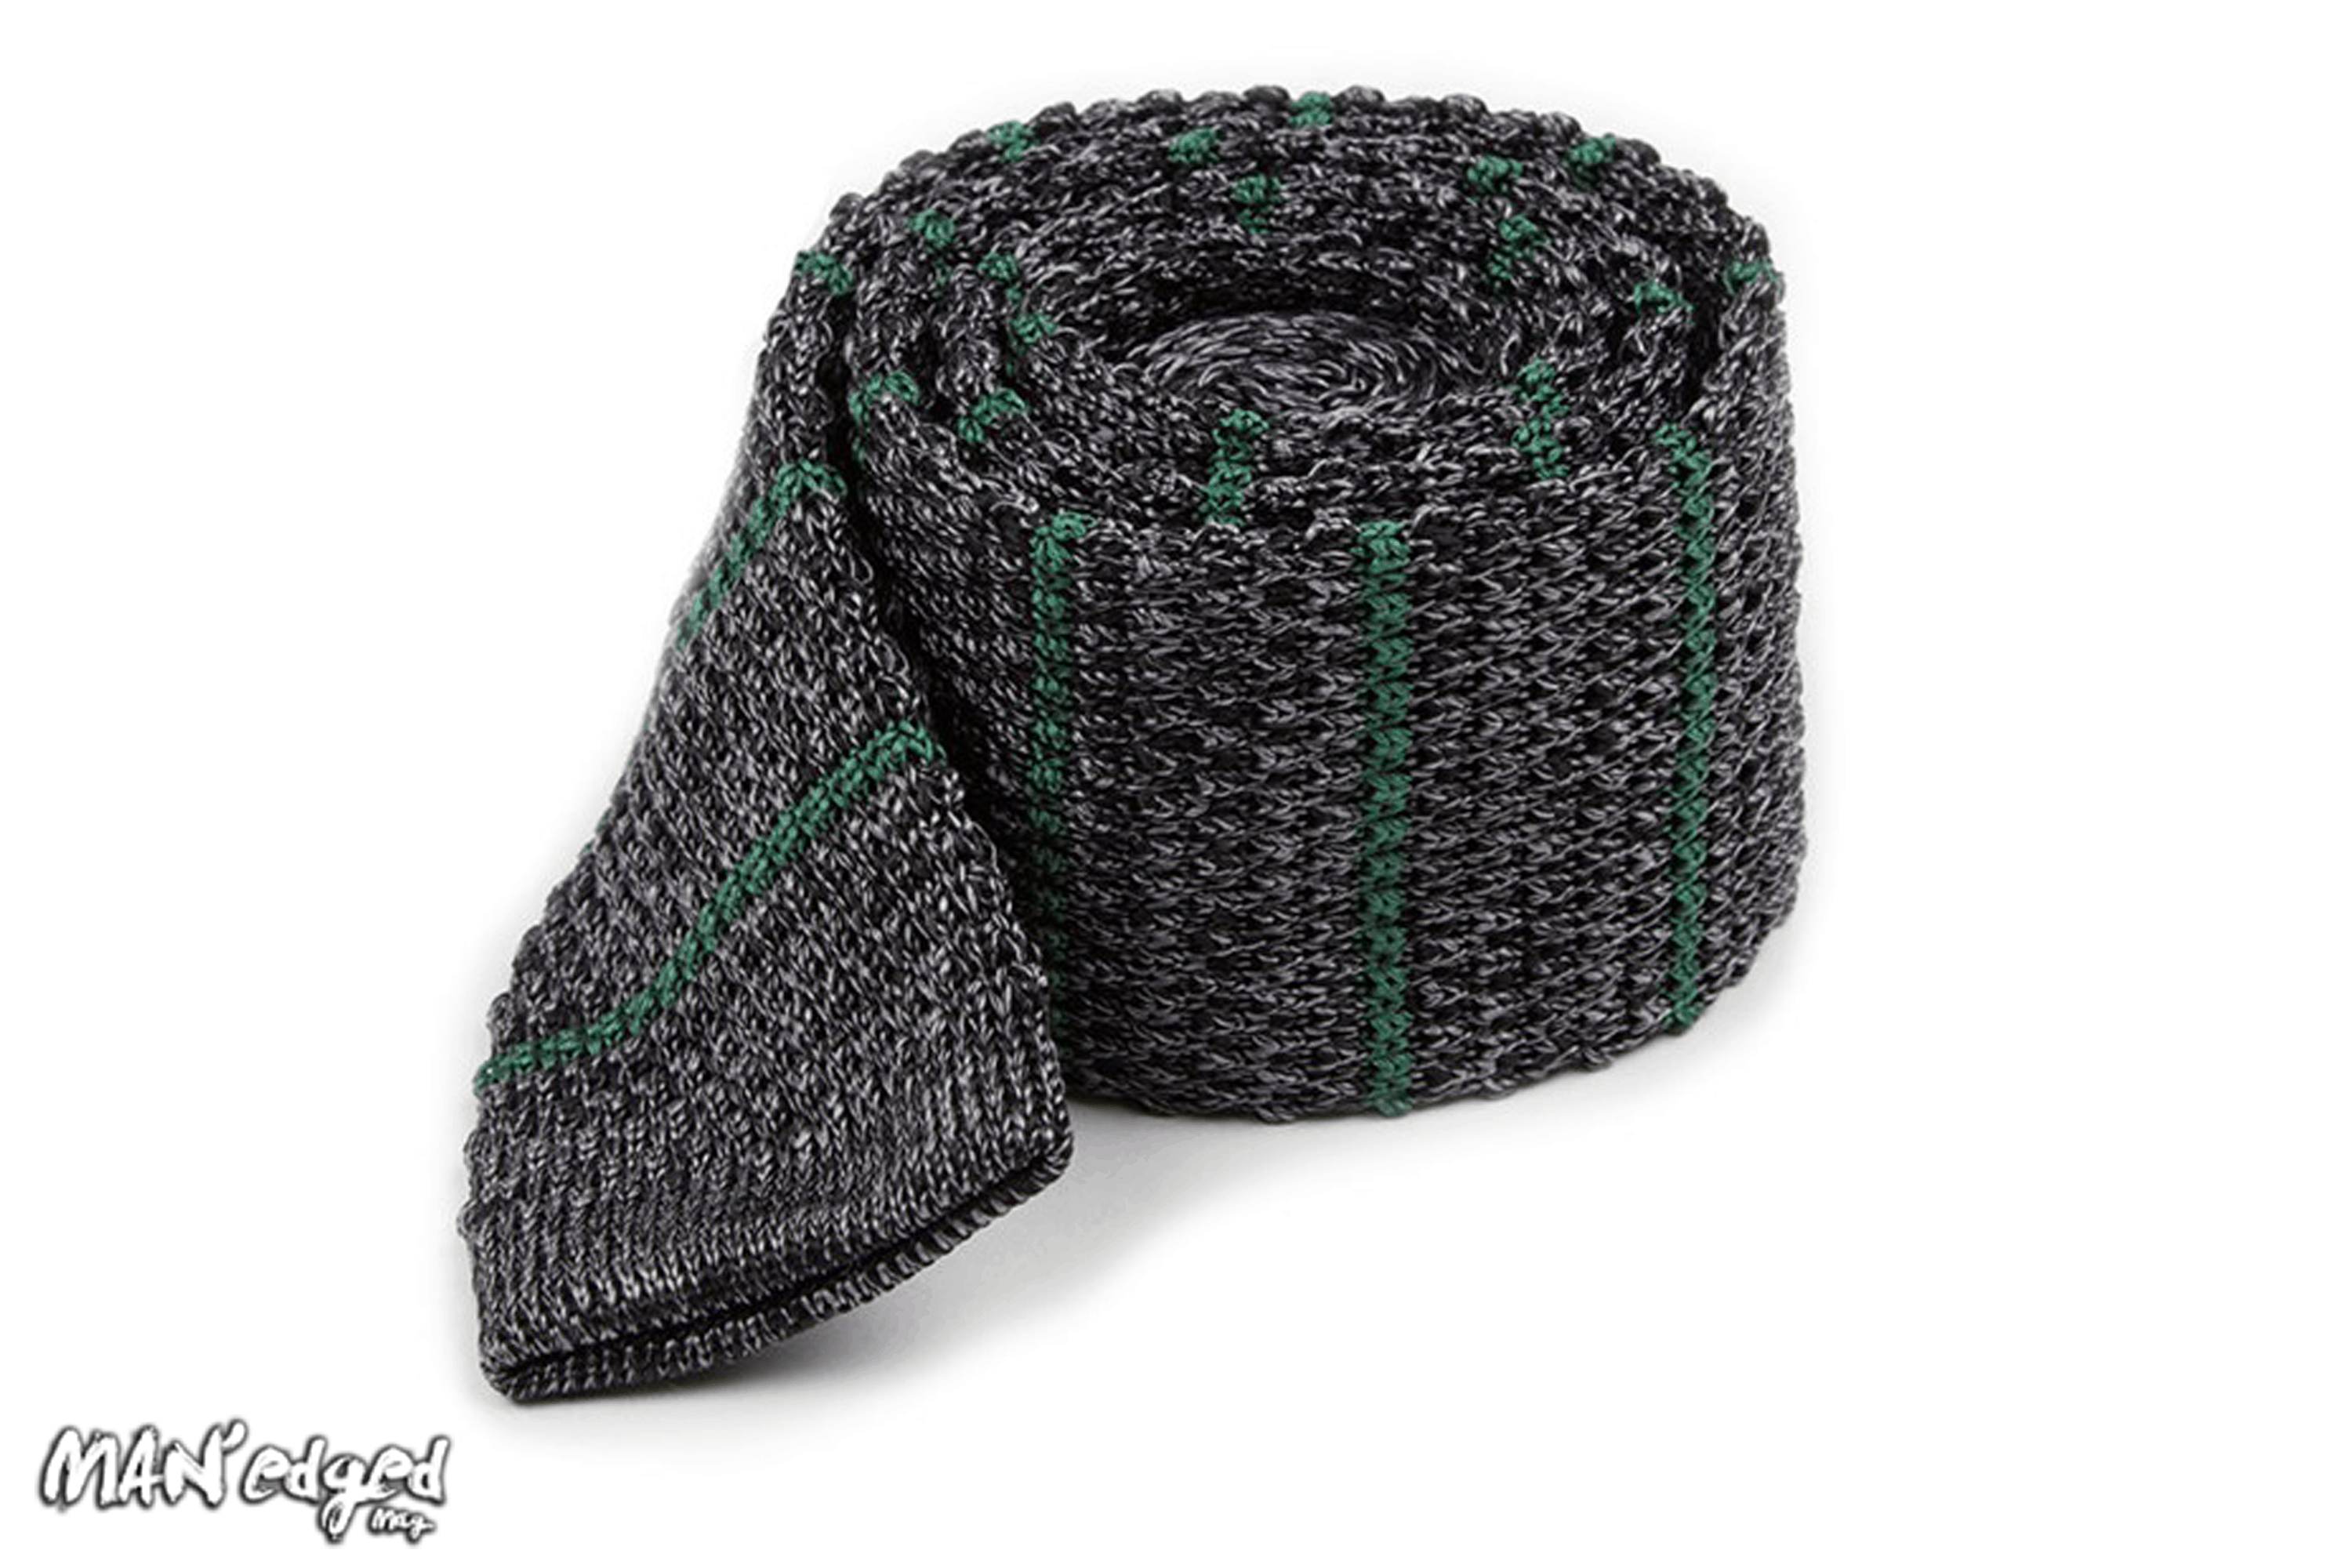 Green knit men's tie from the tie bar, featured in MAN'edged Magazine St Patricks Day men's style round up